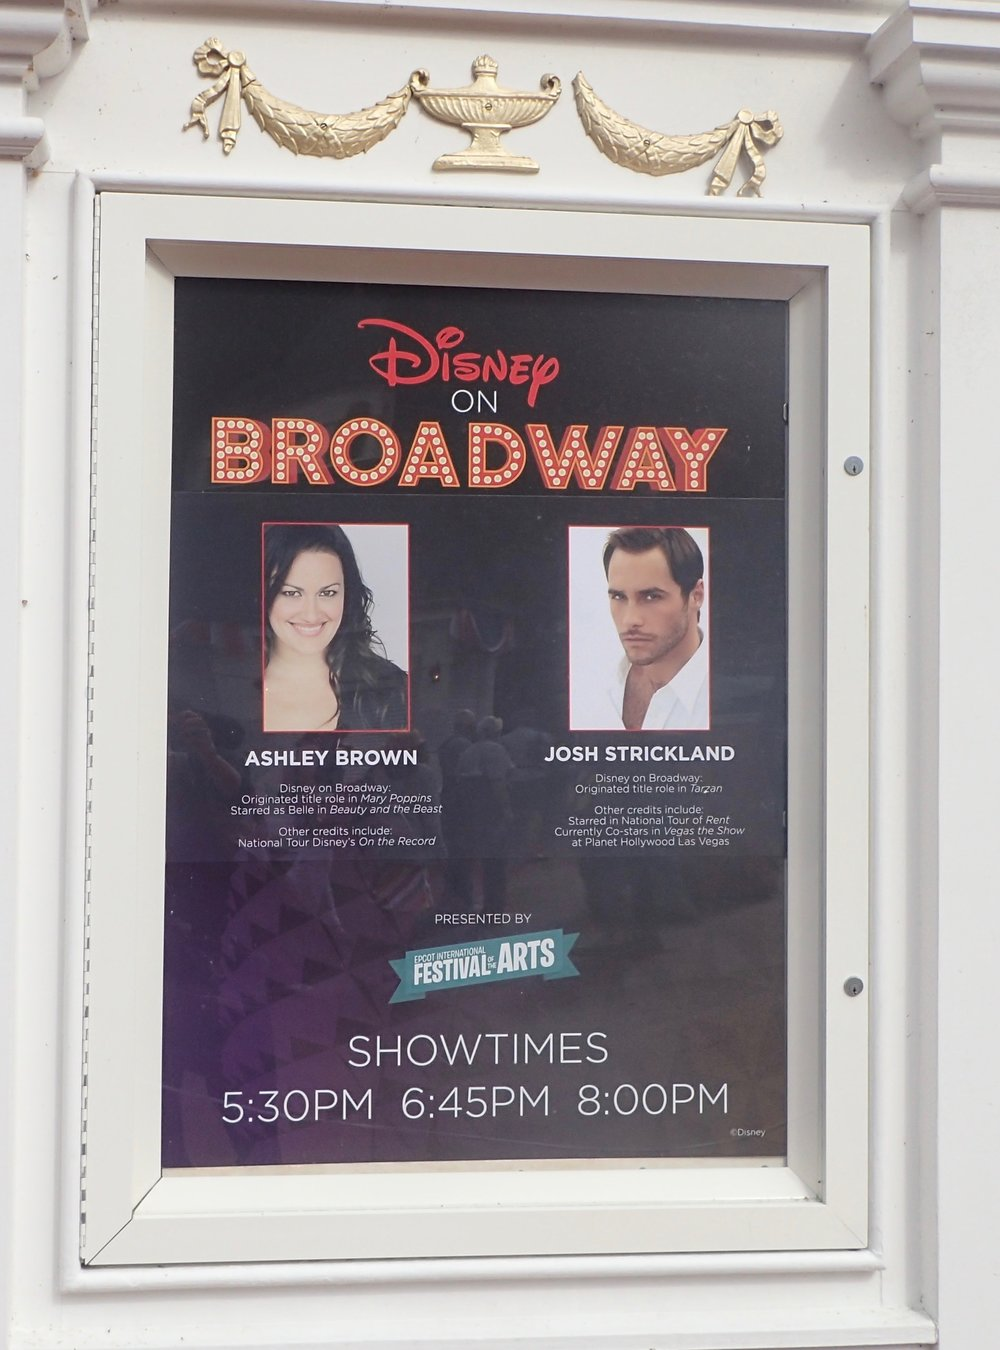 Ashley Brown and Josh Strickland are among the Broadway headliners performing at night.